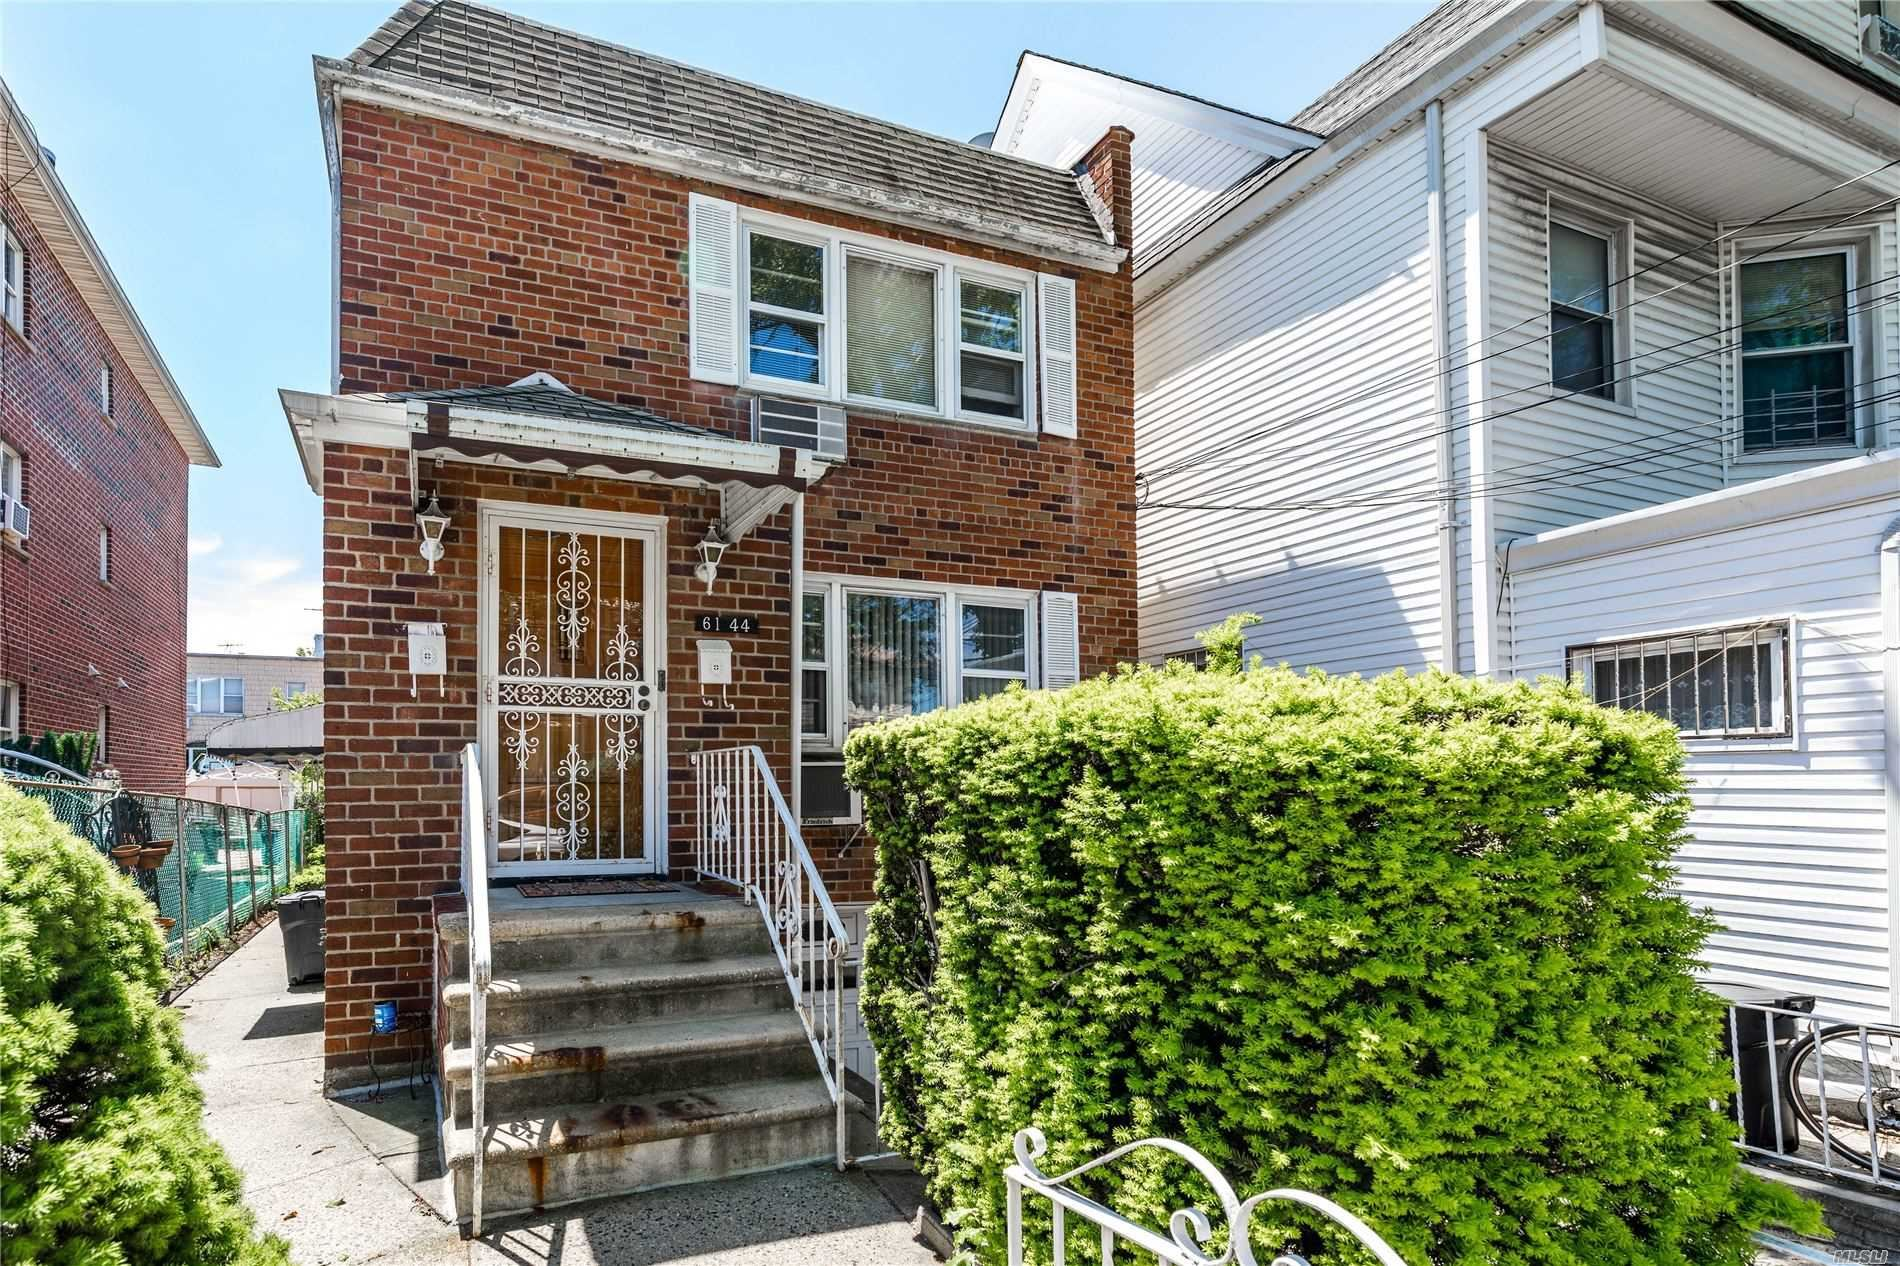 61-44 62nd Avenue, Middle Village, NY 11379 - MLS#: 3219050